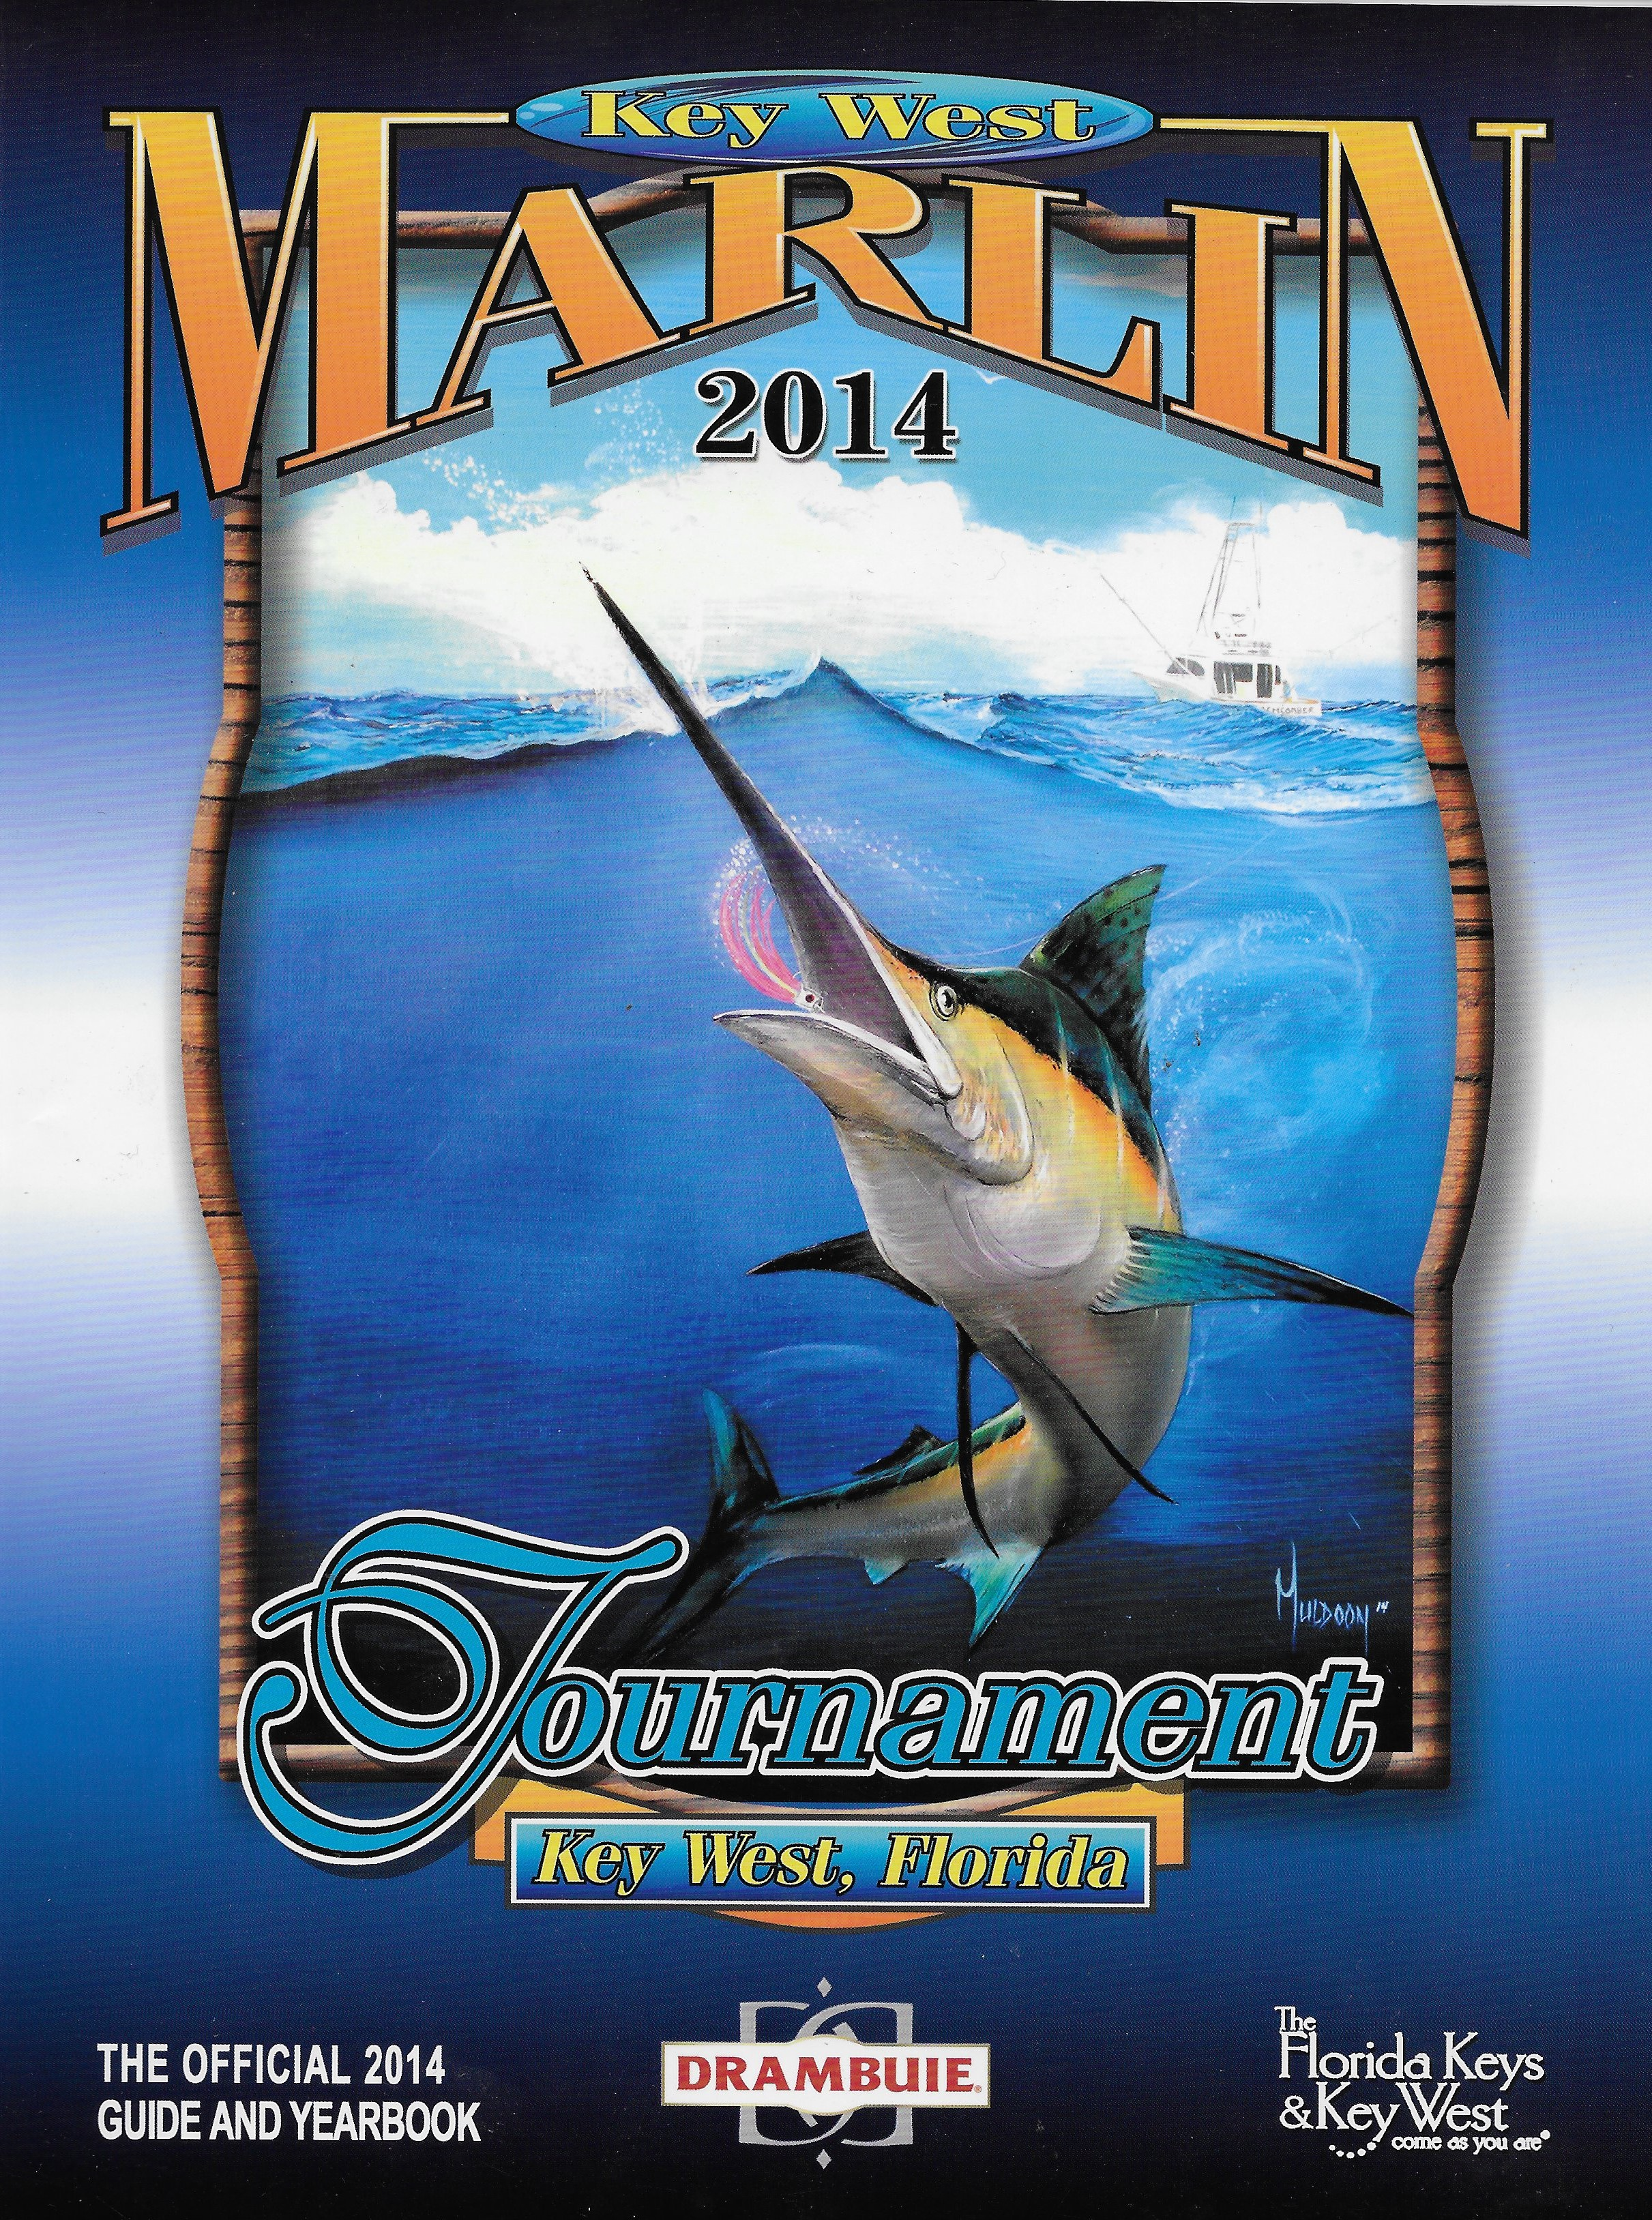 Key West Marlin Tournament 2014